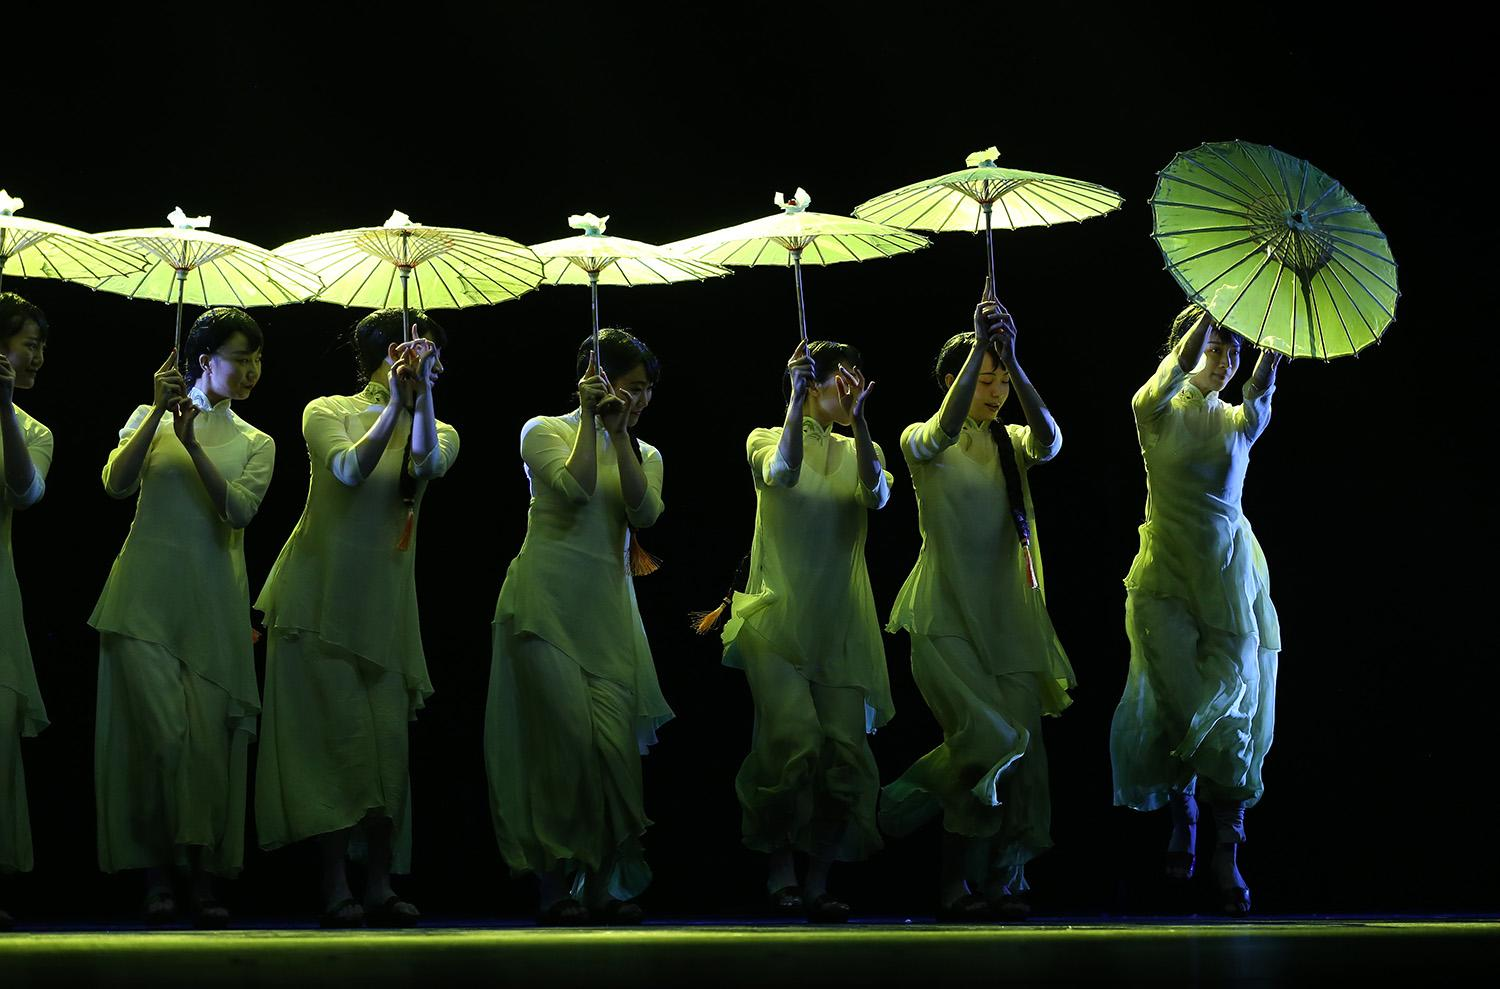 <p>Chinese dancers perform during a rehearsal of 'Chinese Dance: Maestros & Classics', the closing performance of the 'NCPA Dance Festival 2016 at the National Centre for the Perfoming Arts (NCPA) Theatre in Beijing, China, Dec. 11, 2016. (Photo: HOW HWEE YOUNG/EPA) </p>